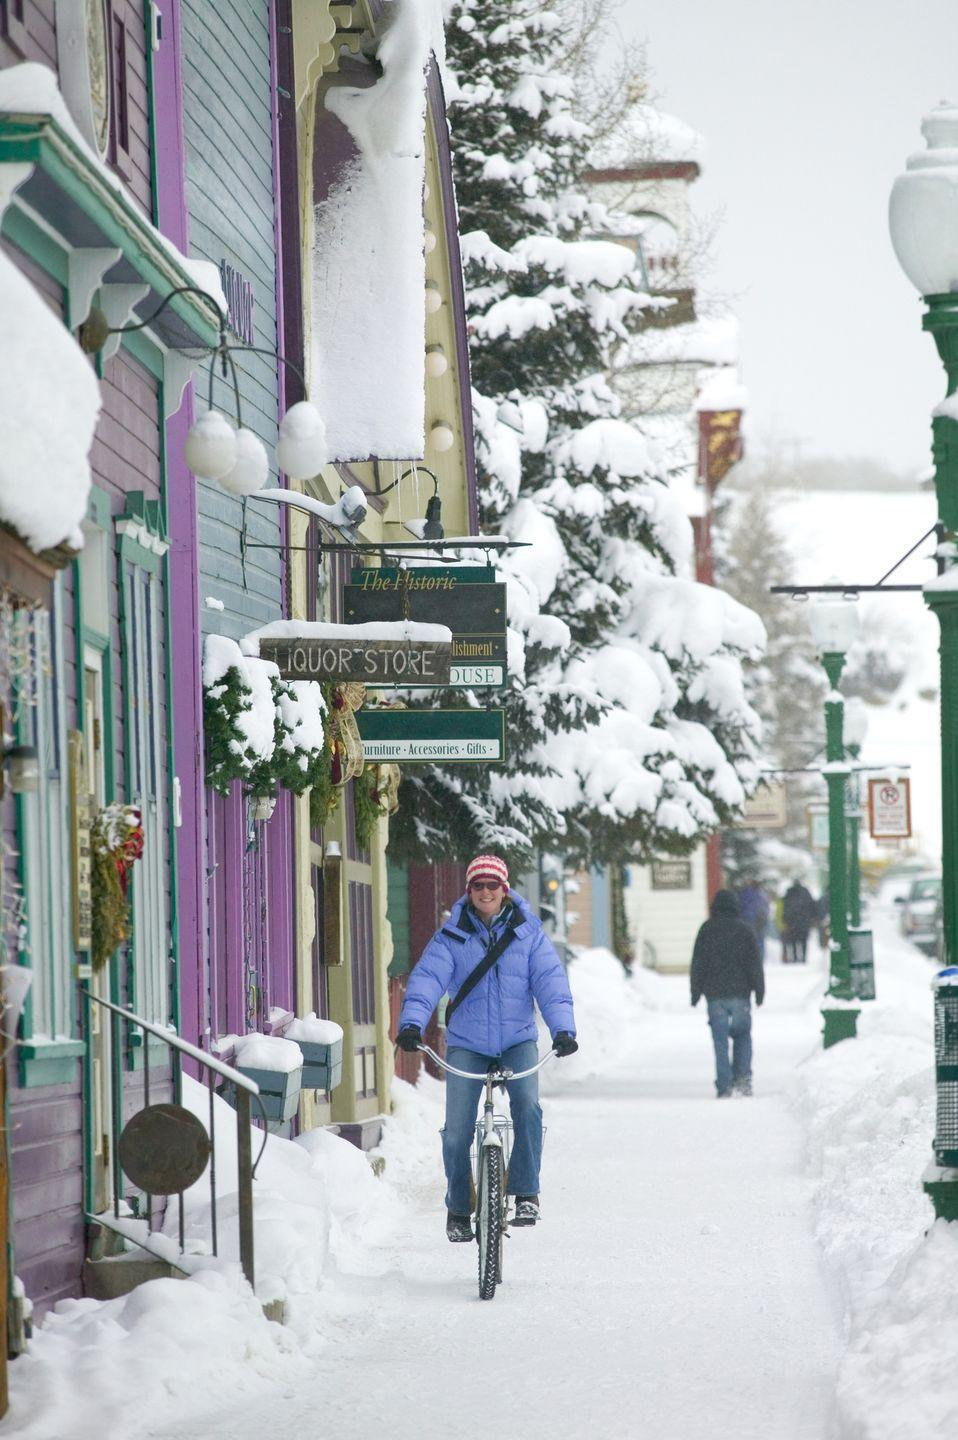 <p>Colorado has winter options a plenty for your winter fun, from Denver to Breckenridge to Aspen to Vail. But the colorful buildings on Elk Avenue just add to the charm of this tiny Colorado village in the midst of the Rocky Mountains. </p>